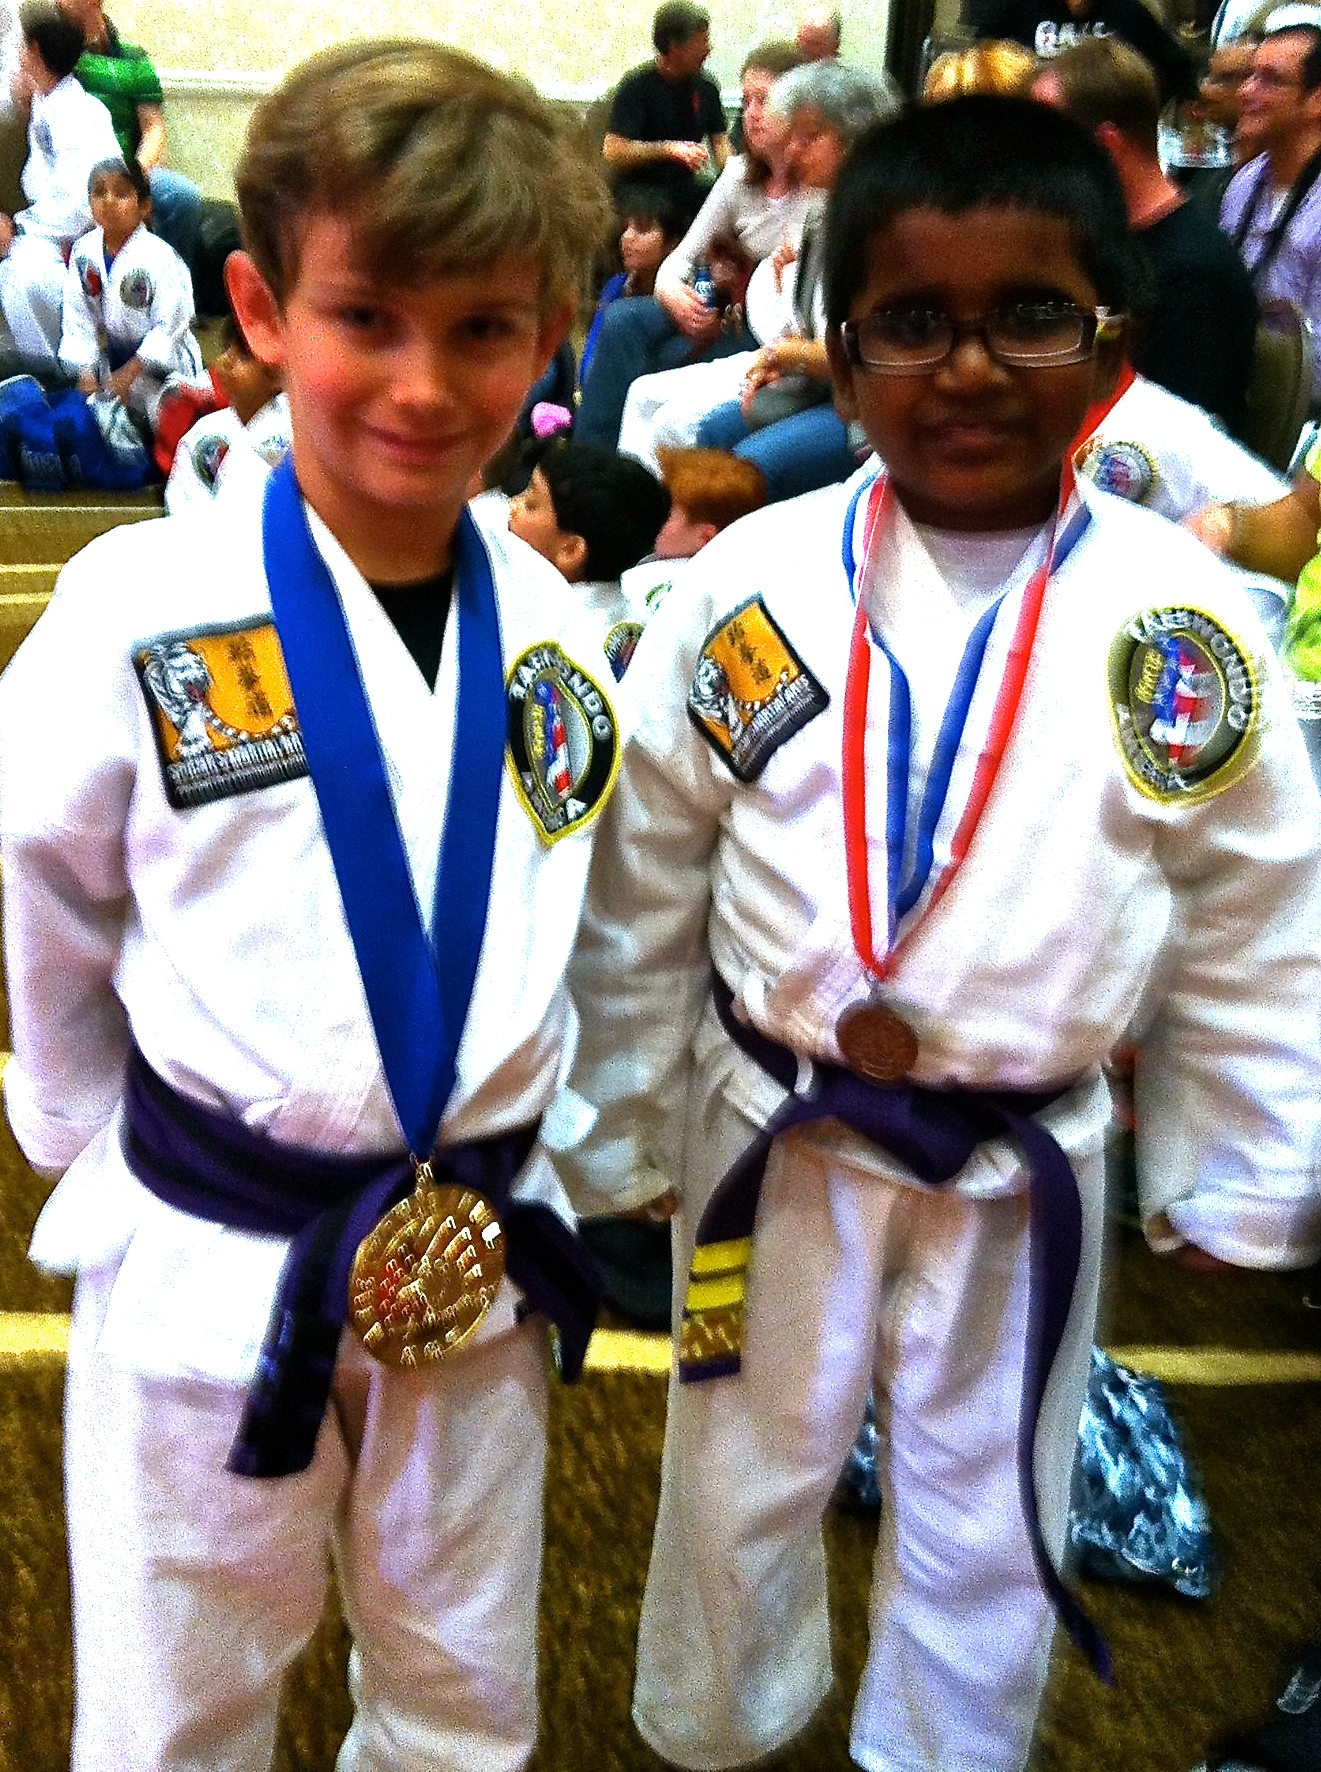 Jaxon Capps (left) winning gold medal in forms in the Purple Belt Junior division. Posing together with his friend Manasrishi Tummala.